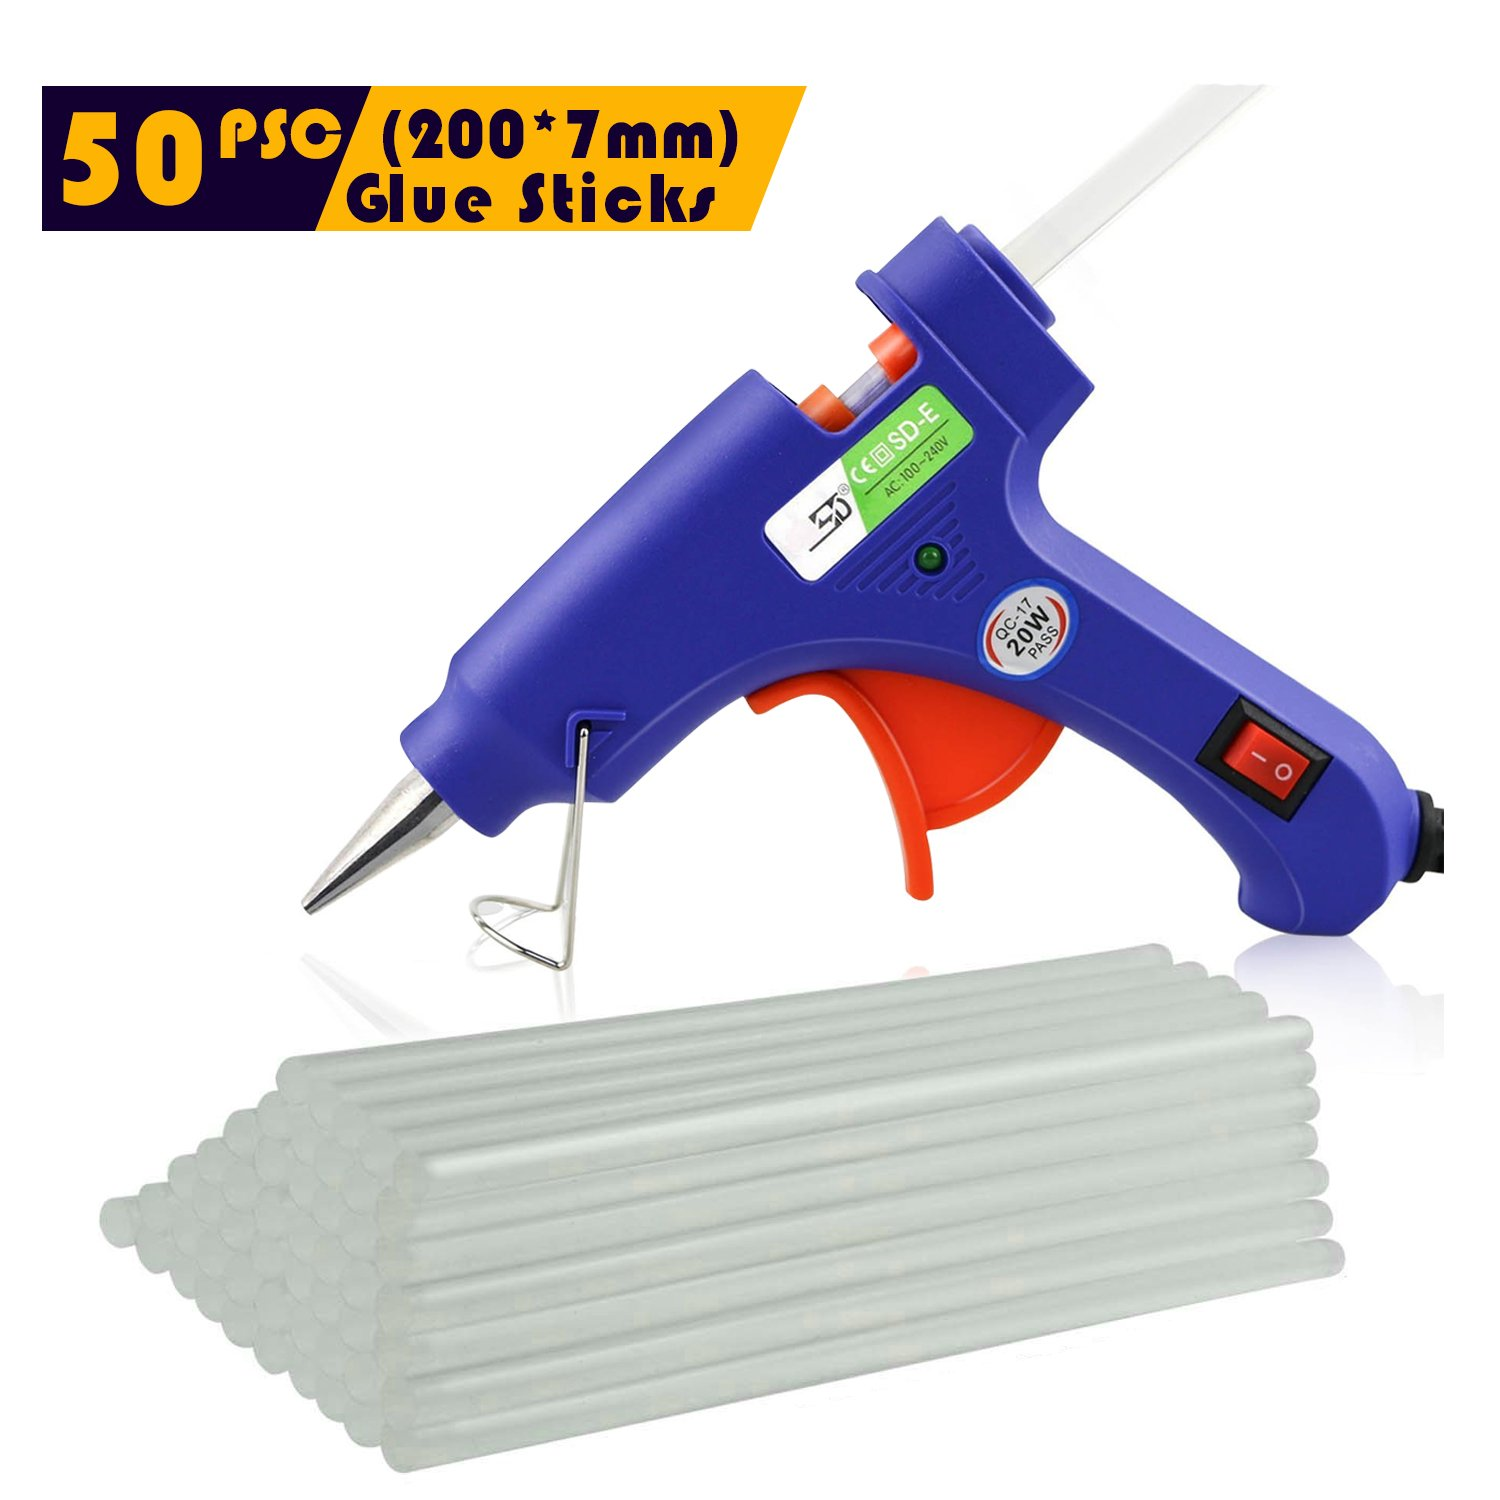 Hot Glue Gun - 20w Mini High Temp Glue Gun & 50pcs Small Hot Glue Sticks, Best Replacement Glue Sticks and High Performanc Craft for DIY, Craft, Industral, Leather Bonding, Child Safe Glue Gun etc